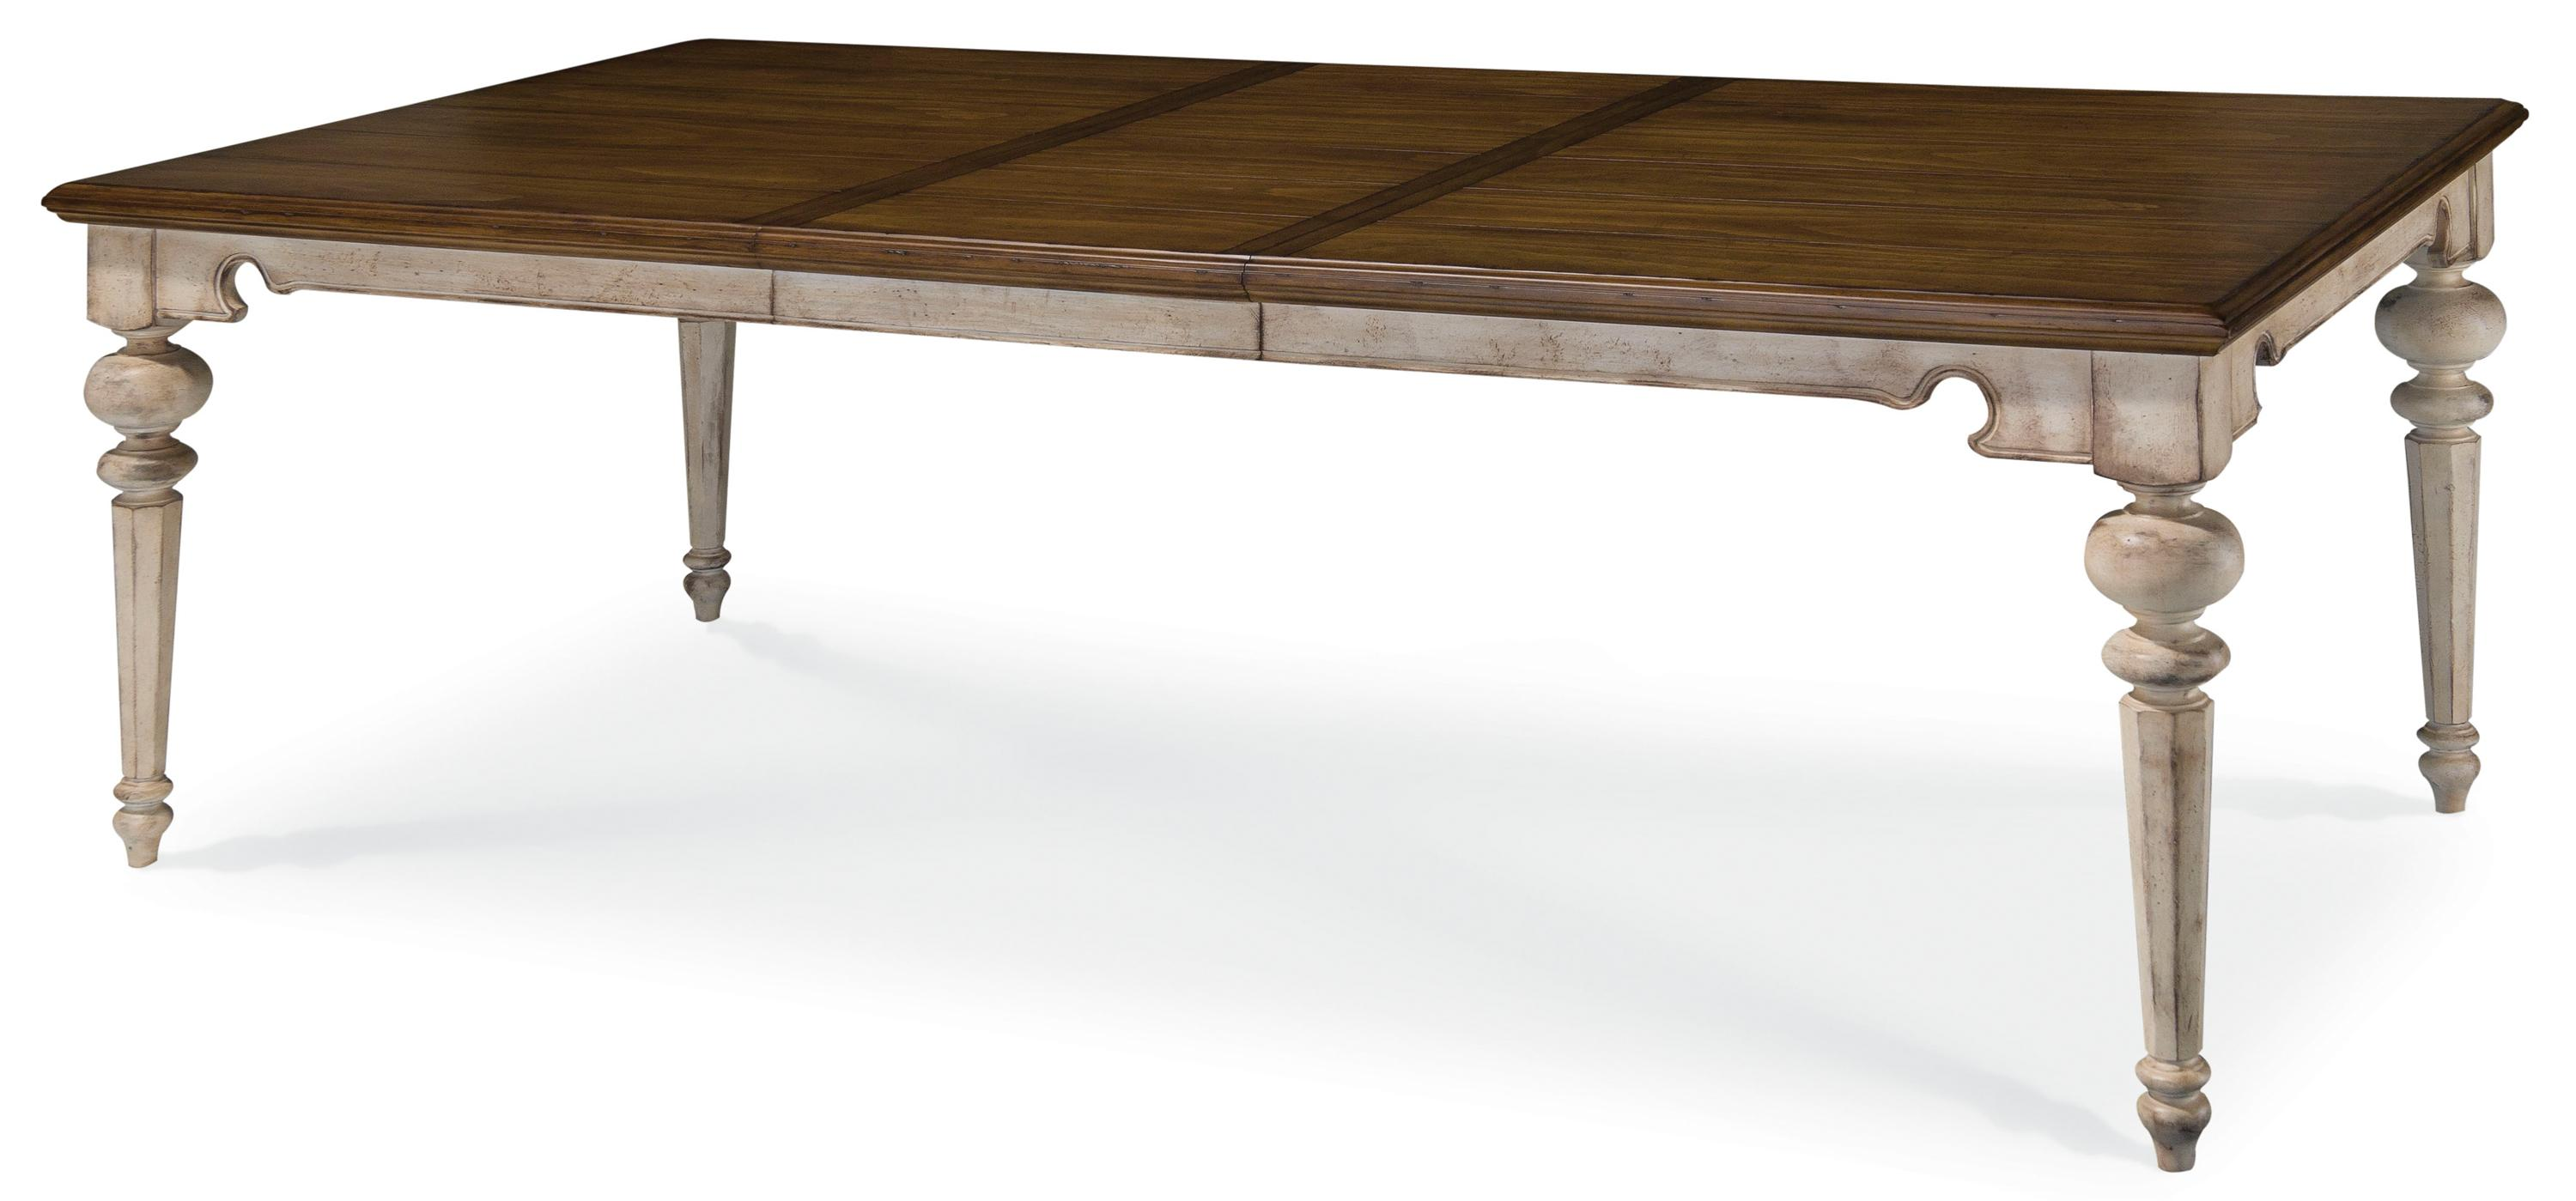 Belfort Signature Farrington Rectangle Dining Table - Item Number: 189220-2617